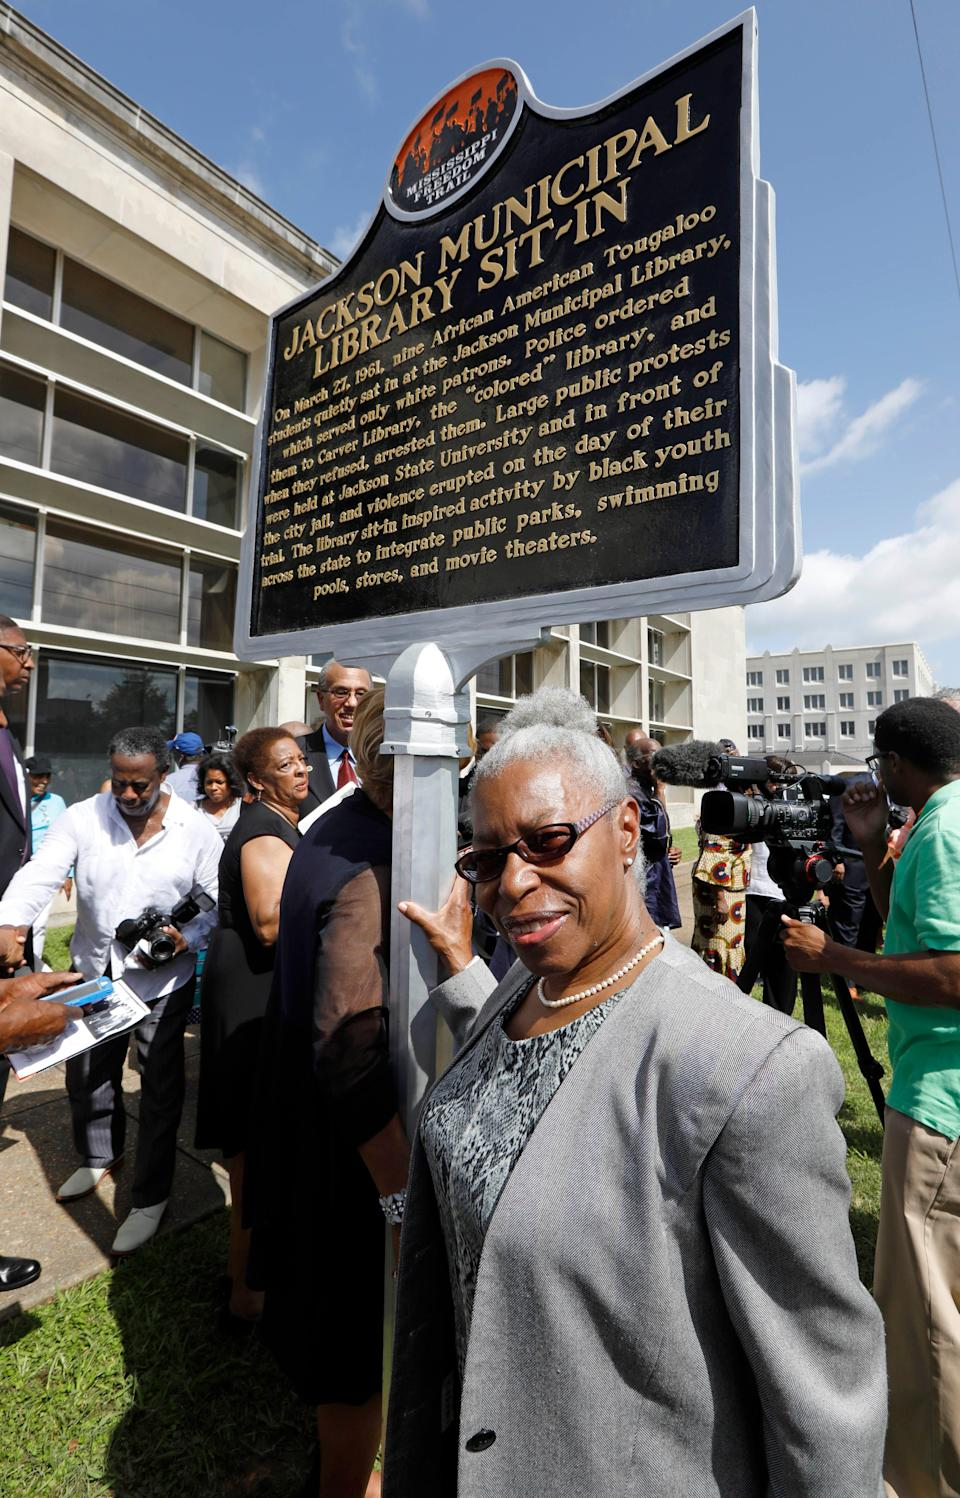 """Geraldine Edwards Hollis, a member of the """"Tougaloo Nine,"""" stands alongside the newest Mississippi Freedom Trail marker recognizing she and other Tougaloo College students for their peaceful sit-in in 1961 at the then whites-only Jackson Municipal Library, Thursday, Aug. 17, 2017. The library, sitting in the background, has served other purposes since the 1961 sit-in."""